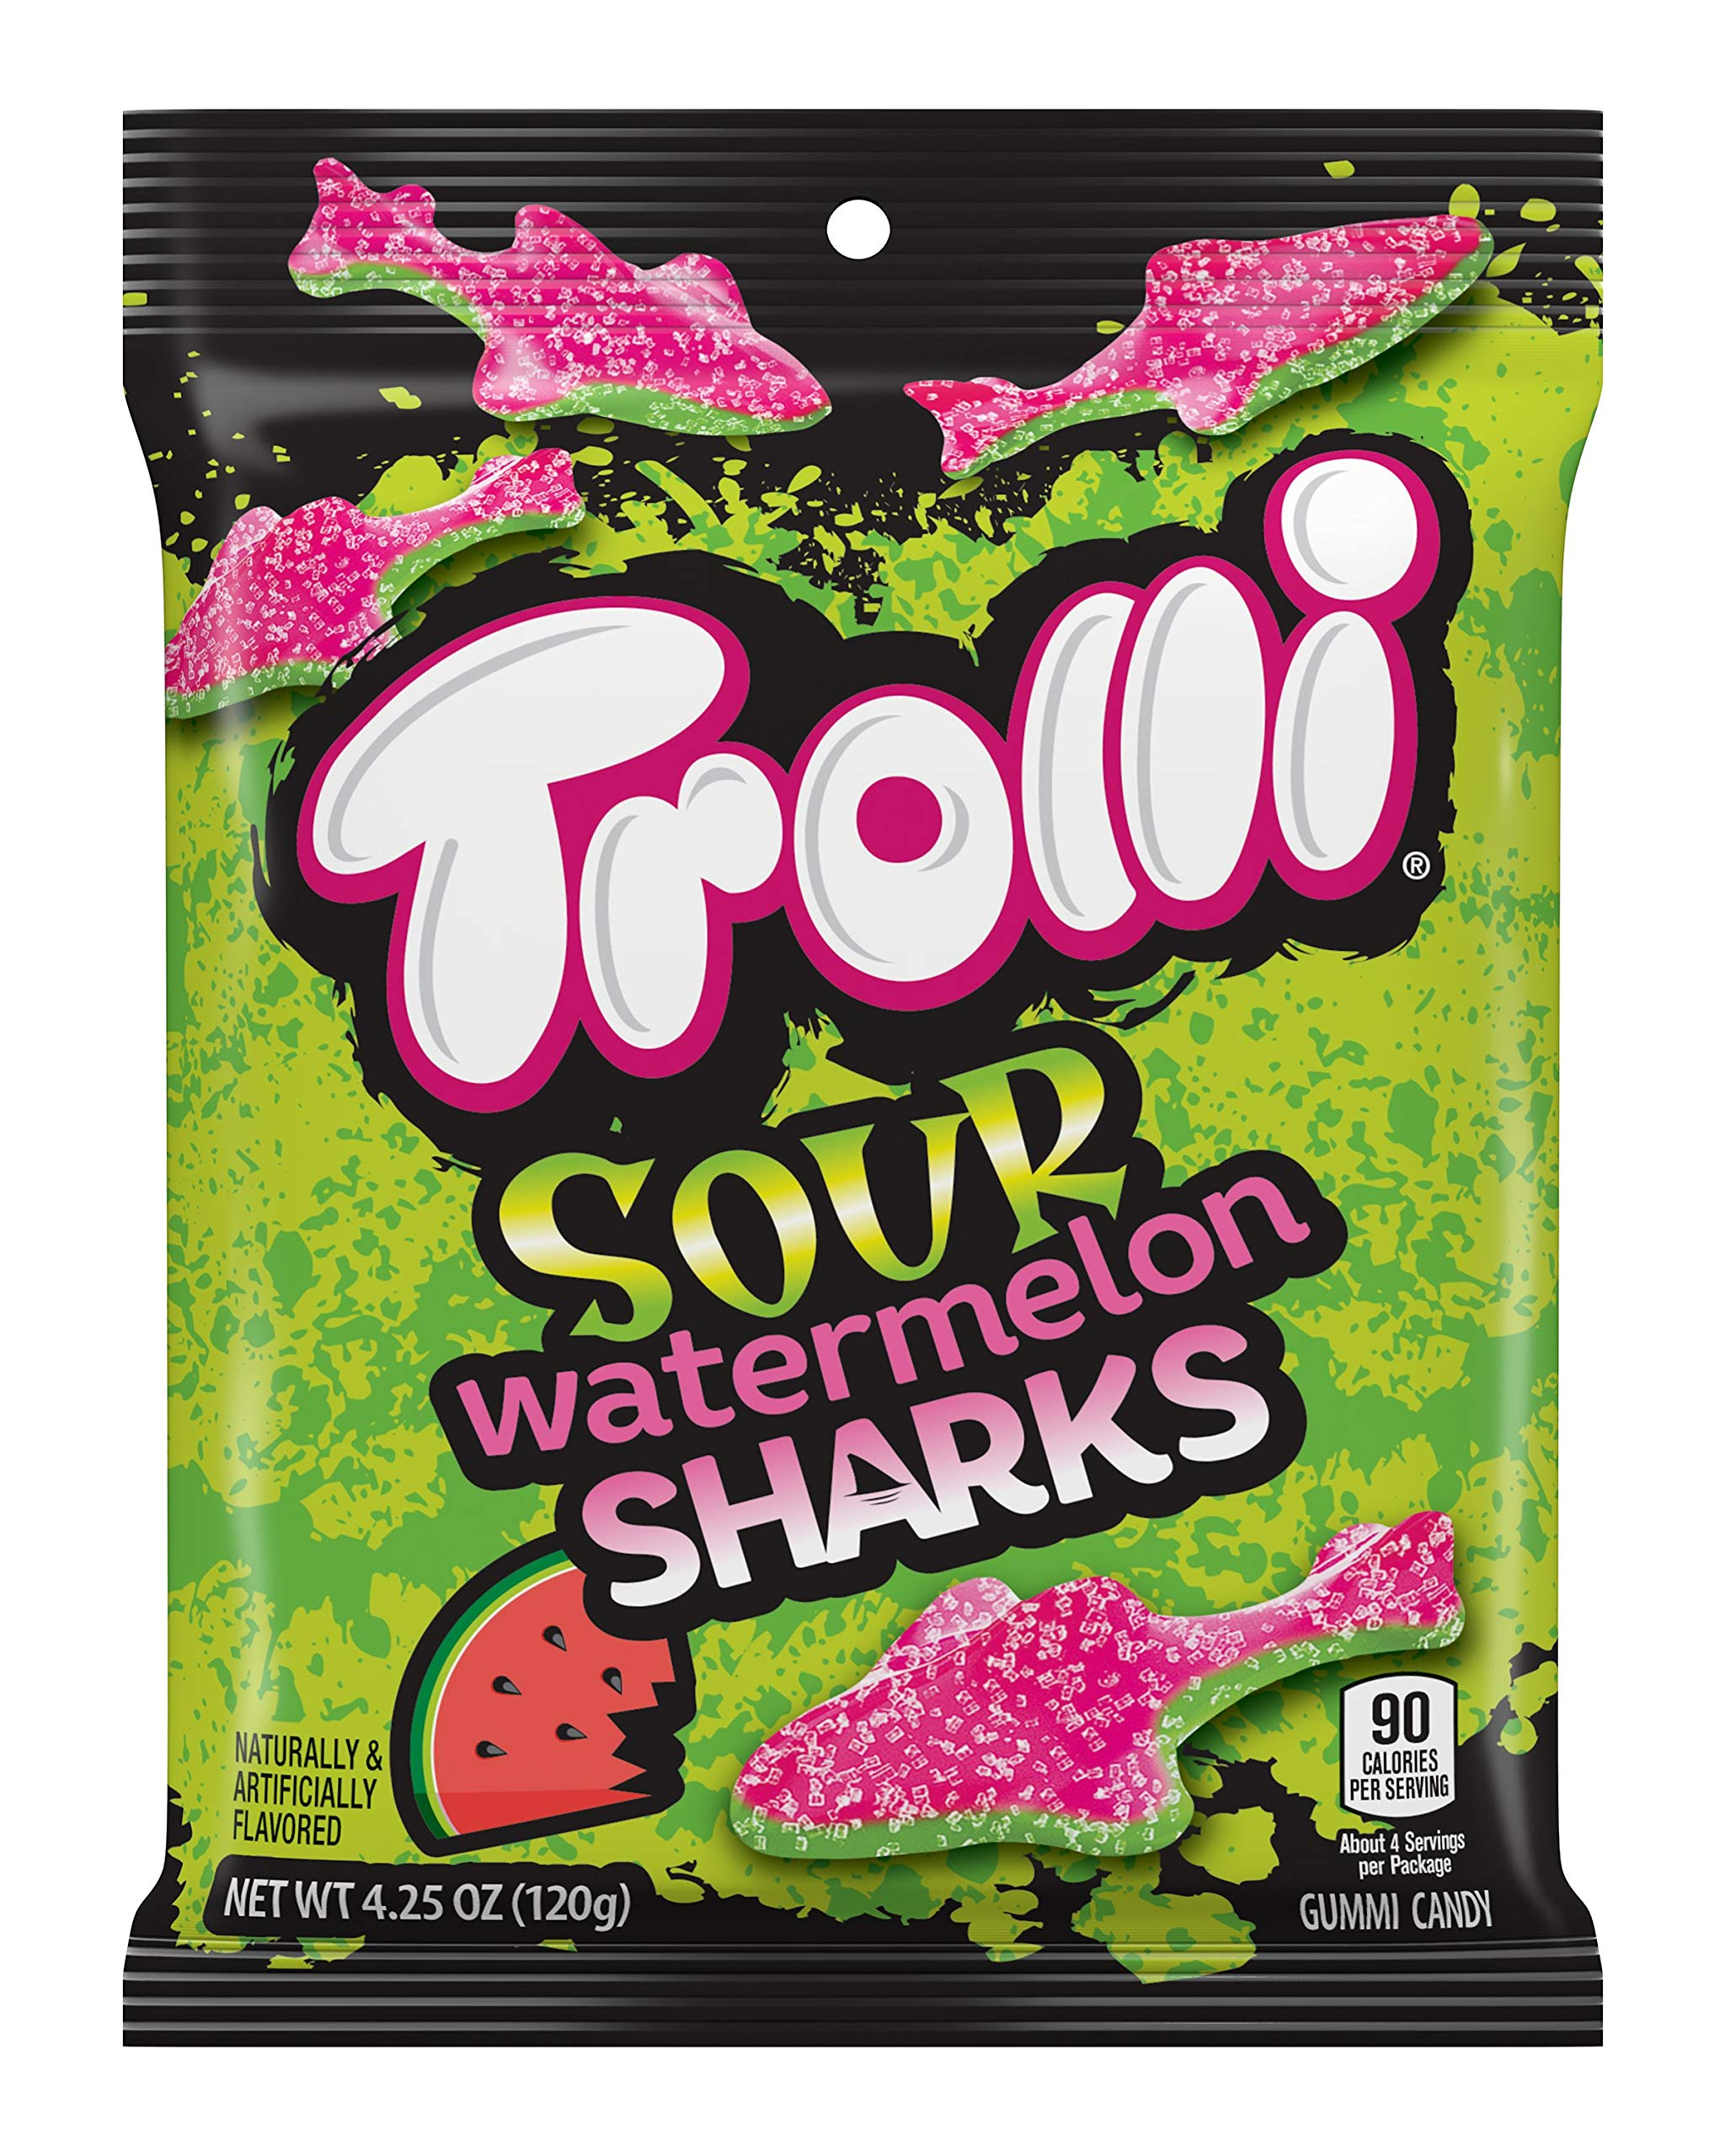 3bb2b306521 Amazon.com   Trolli Sour Watermelon Sharks Gummy Candy